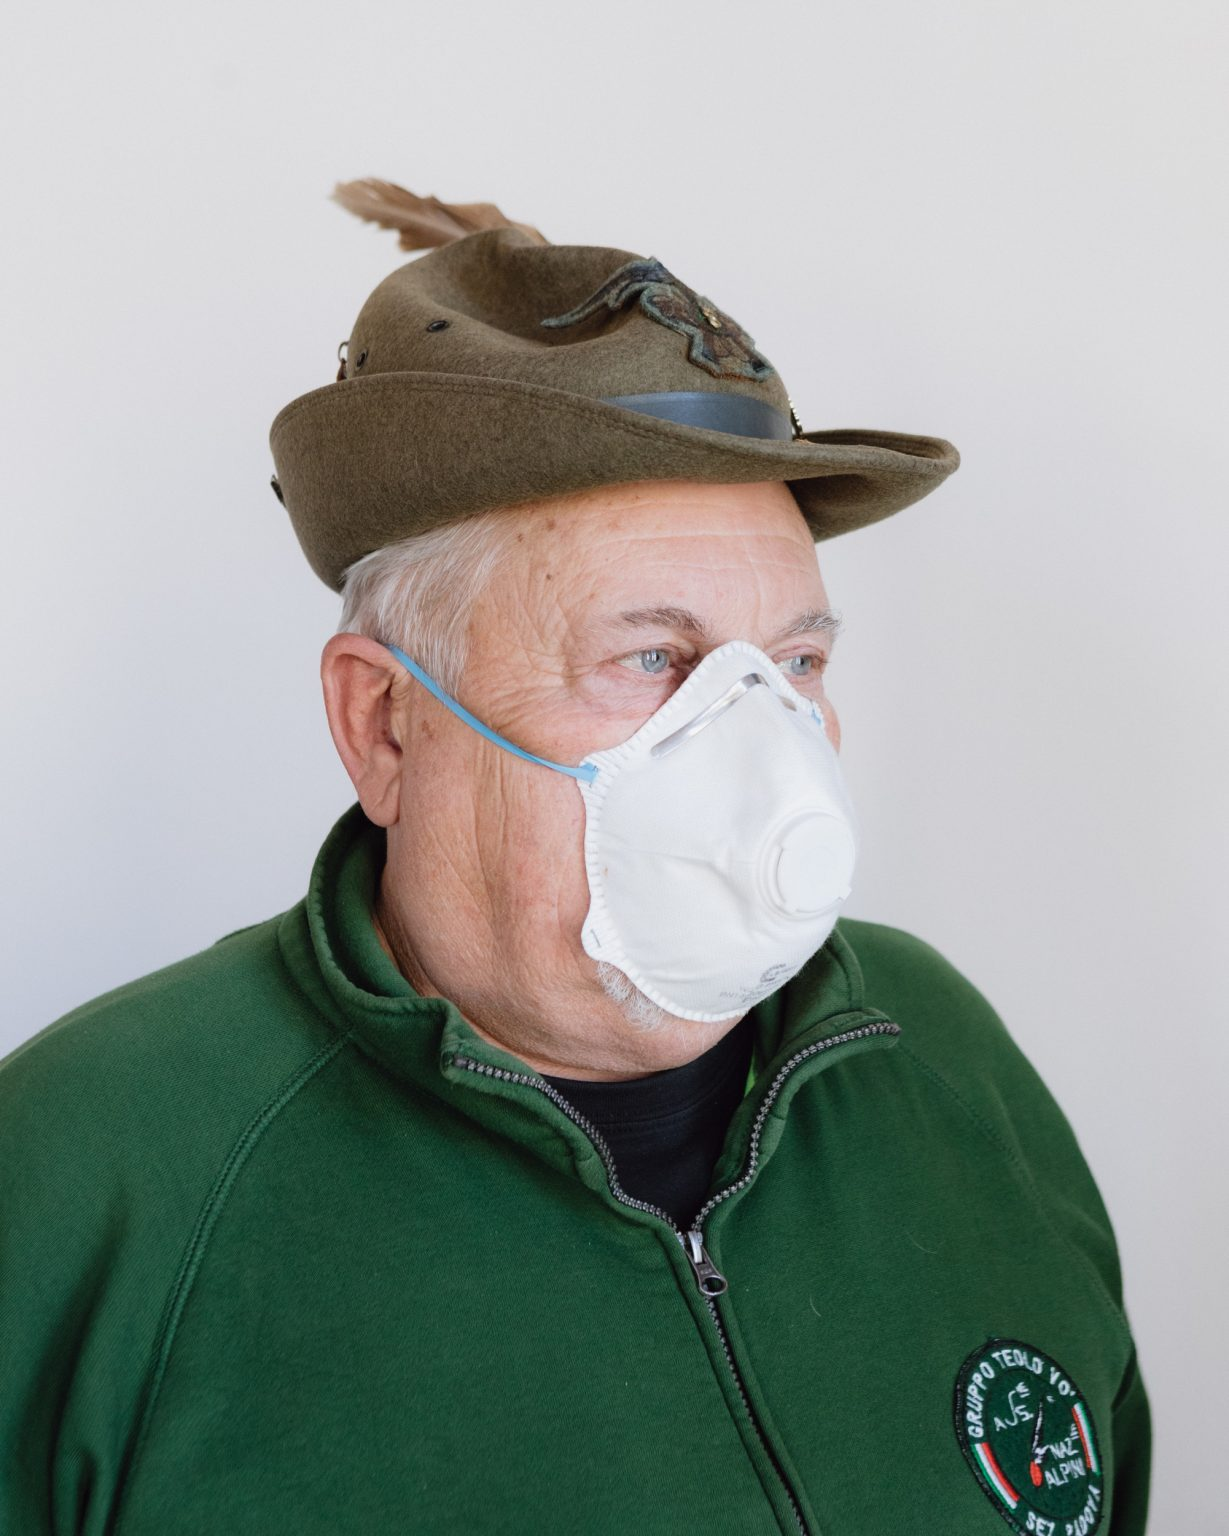 Alessandro, 63, alpine and retired, helps the district of Vo' in the masks distribution. Vo', Padua, Italy, 2020